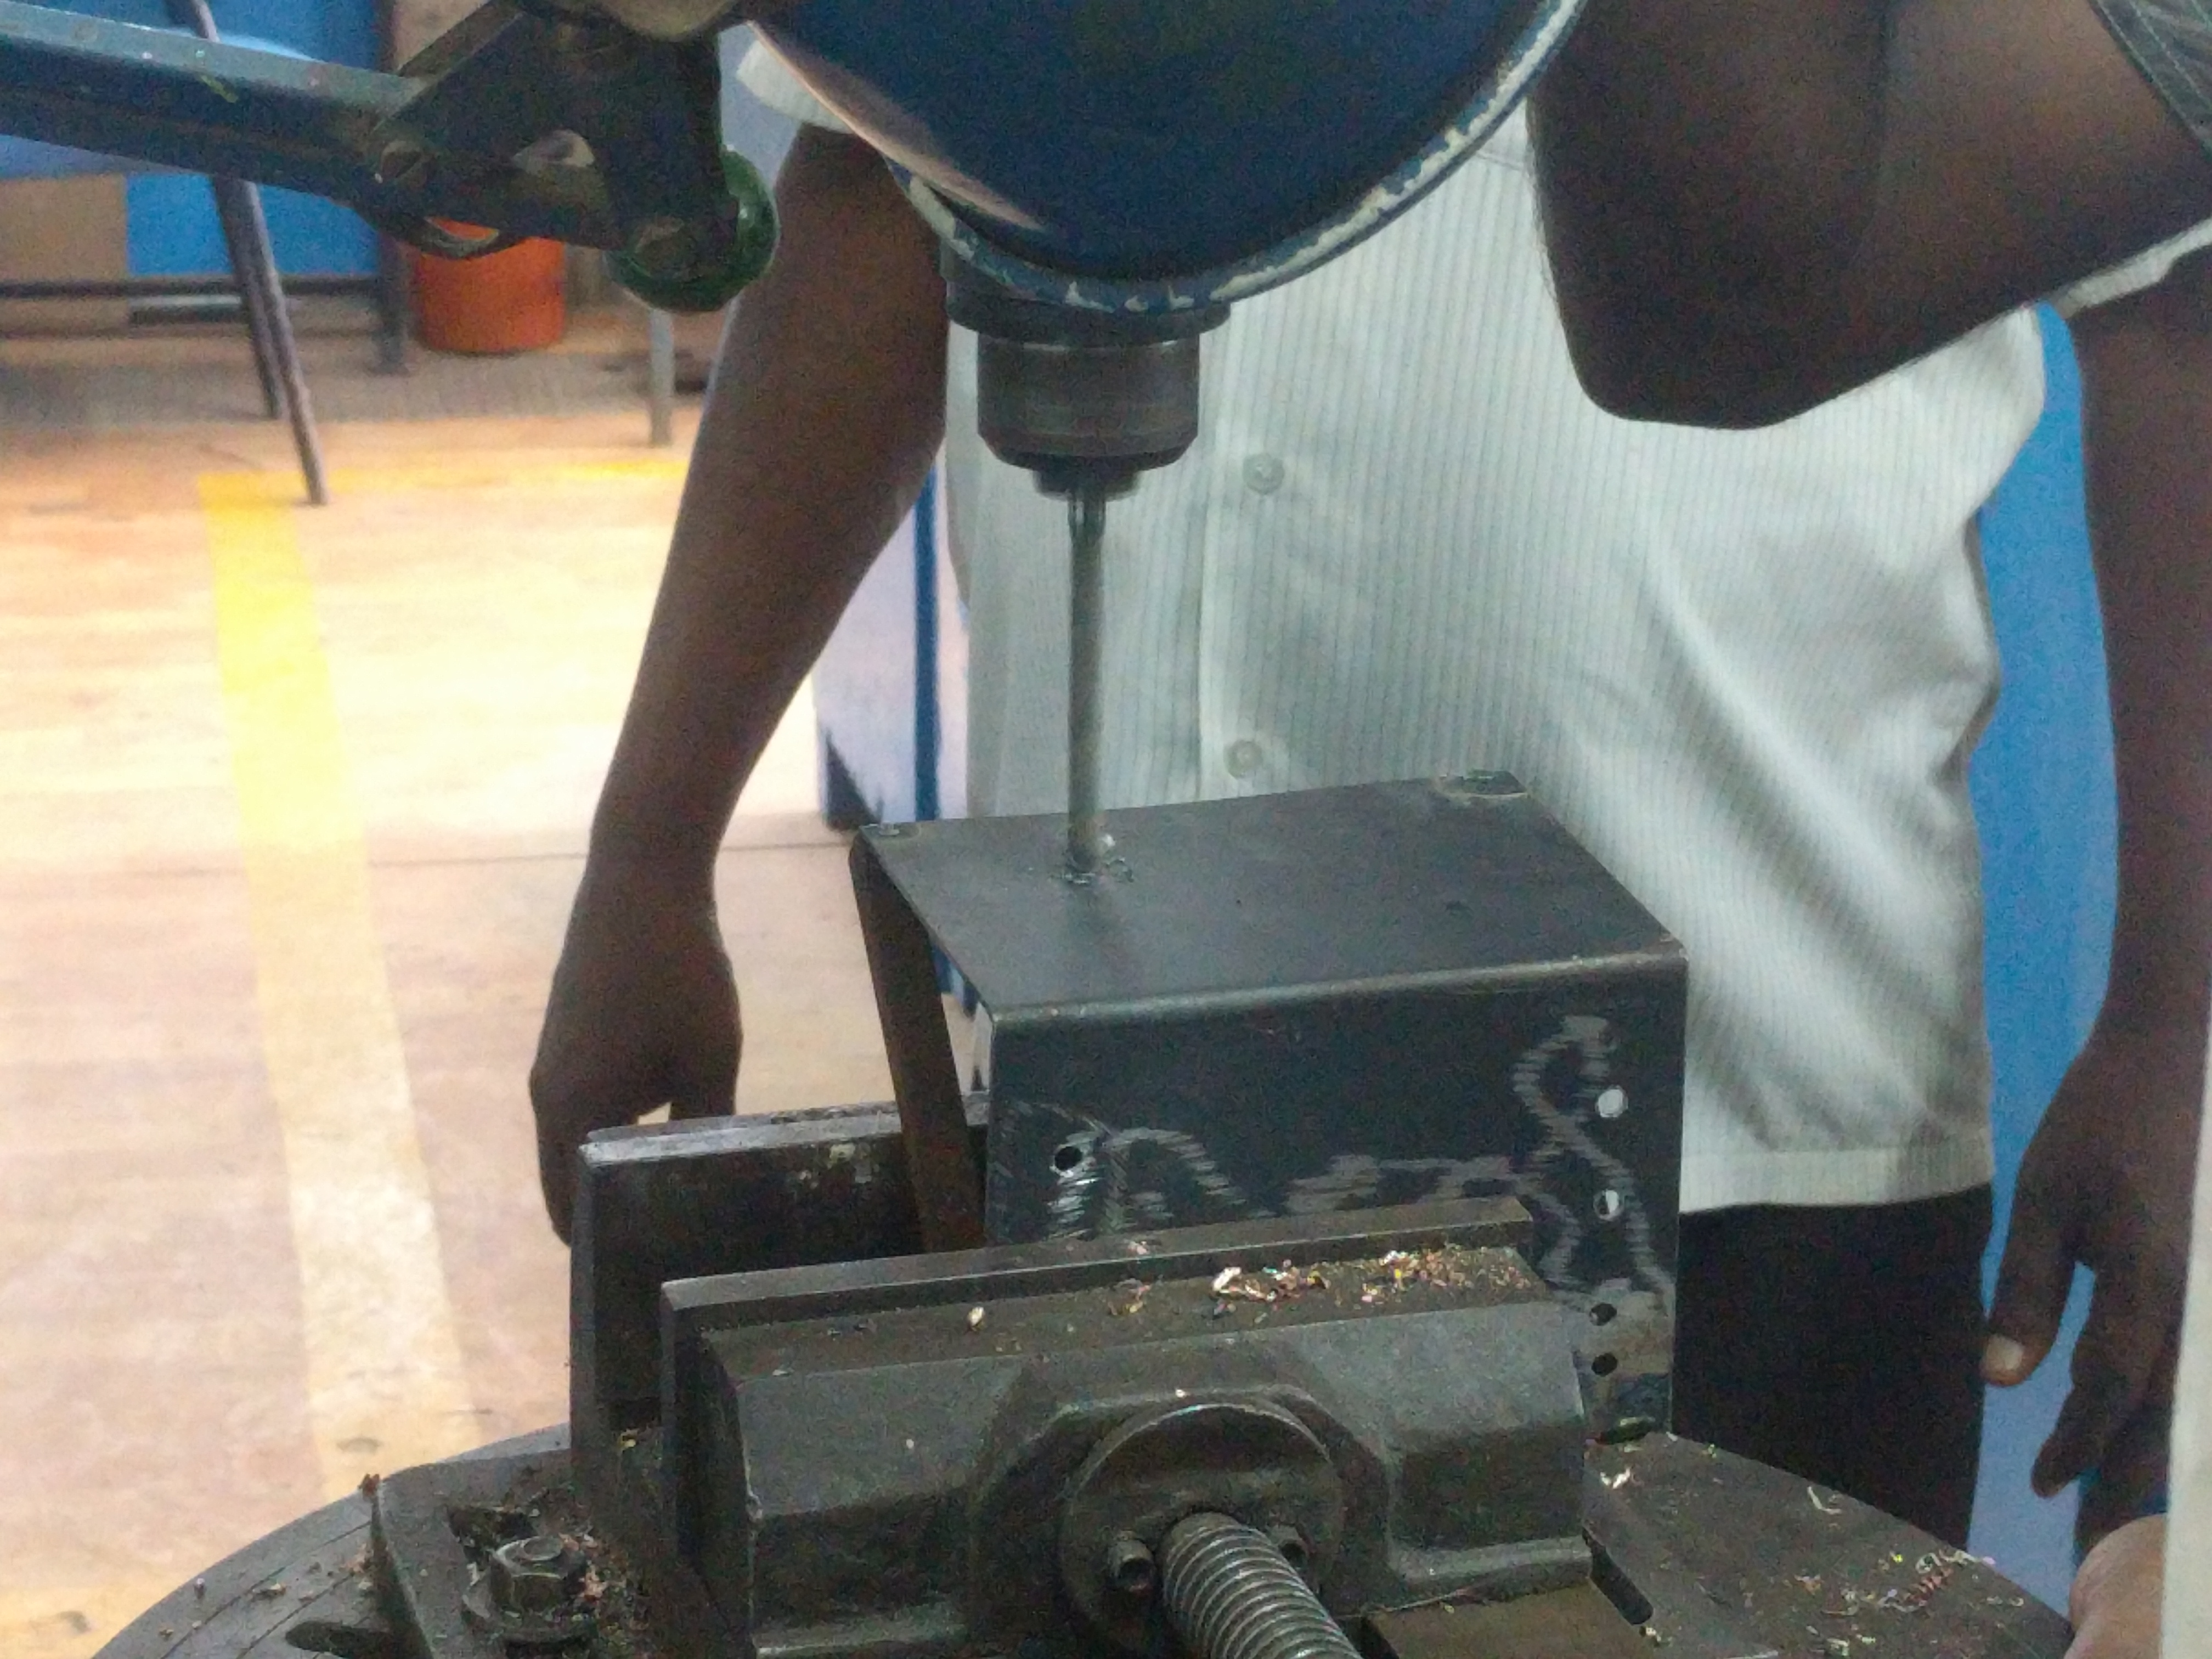 Picture of Actuator Assembly and Plate Fabrication